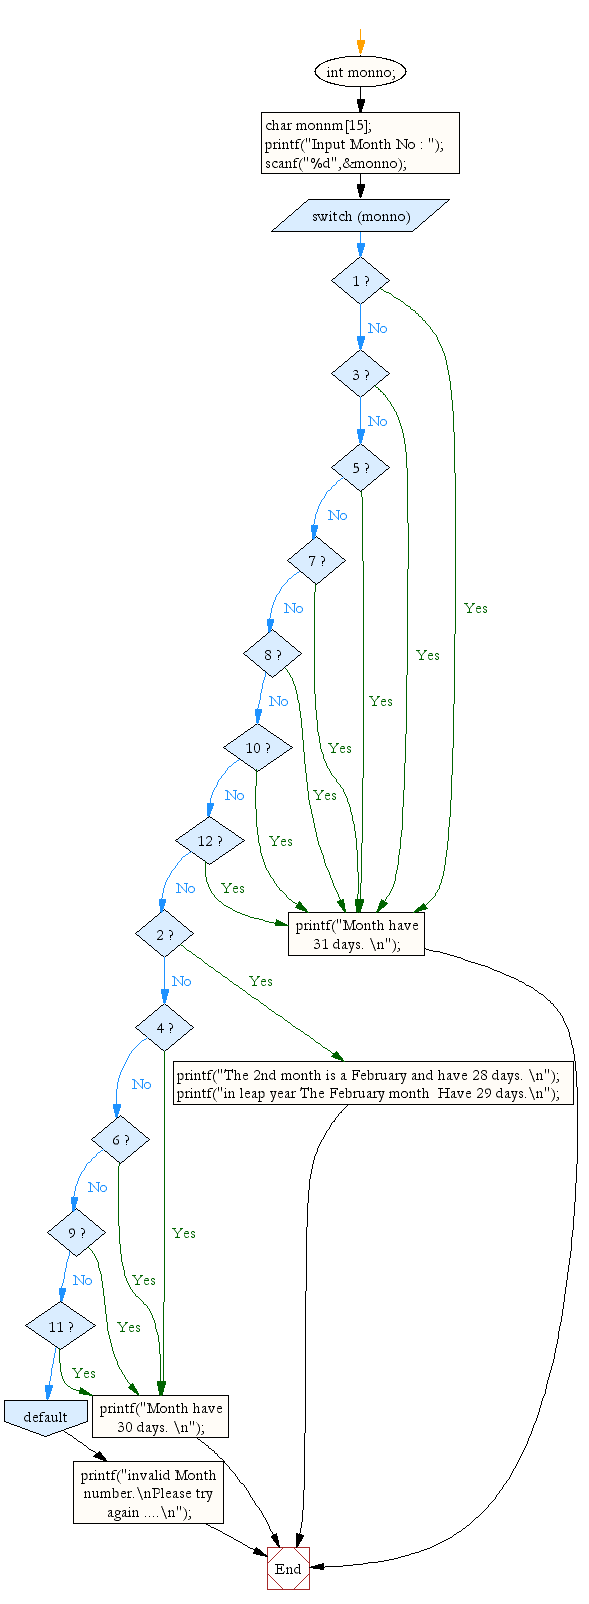 Flowchart: Read month number and display number of days for that month.